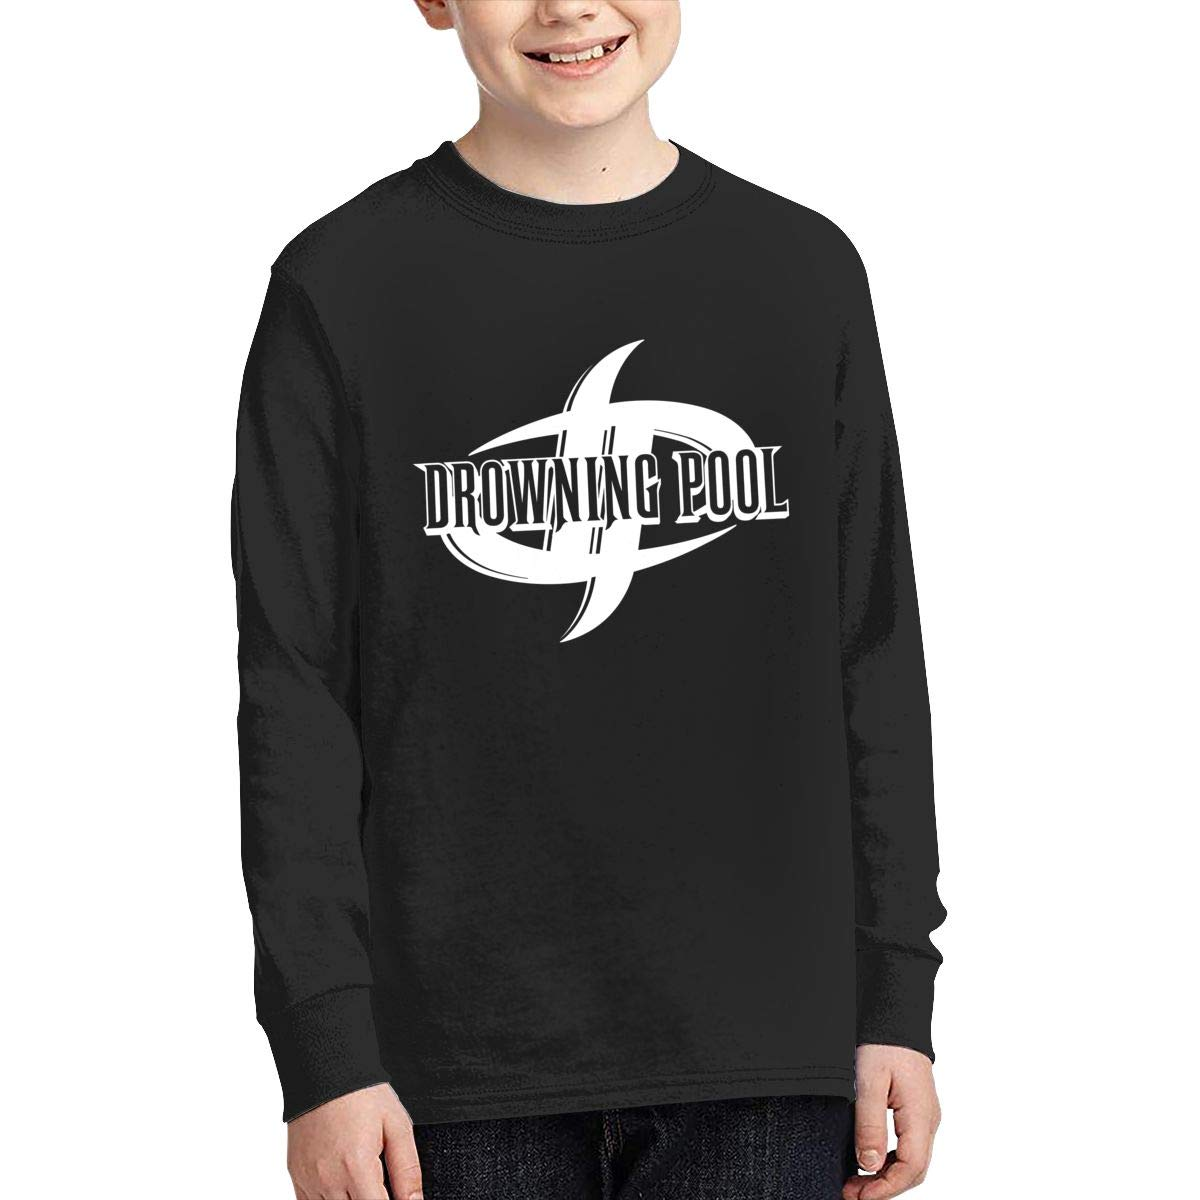 MichaelHazzard Drowning Pool Logo Youth Soft Long Sleeve Crewneck Tee T-Shirt for Boys and Girls